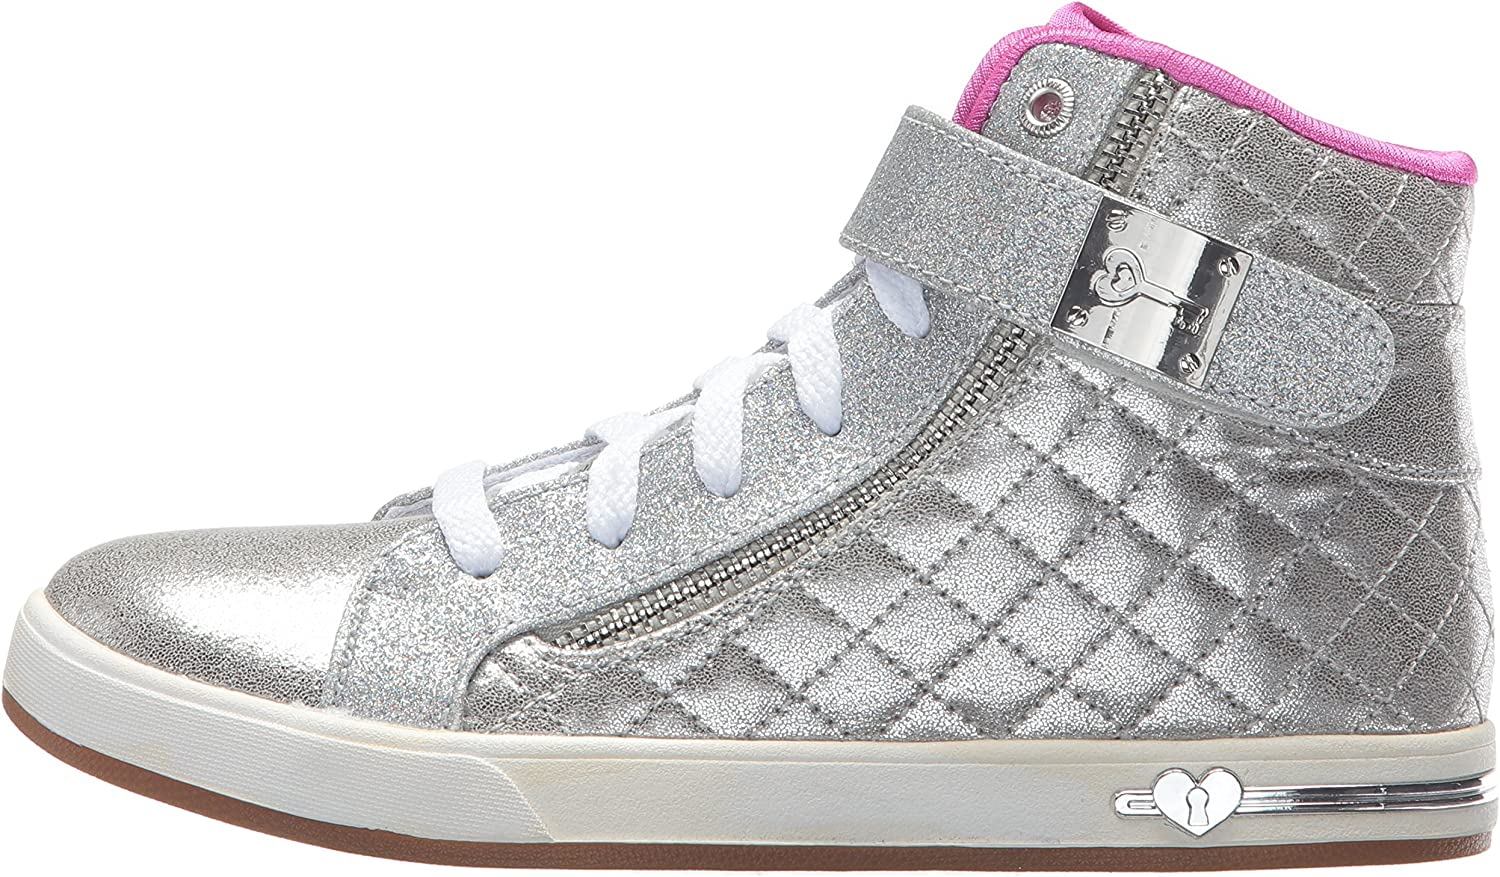 Skechers Shoutouts Quilted Crush, Formateurs Fille